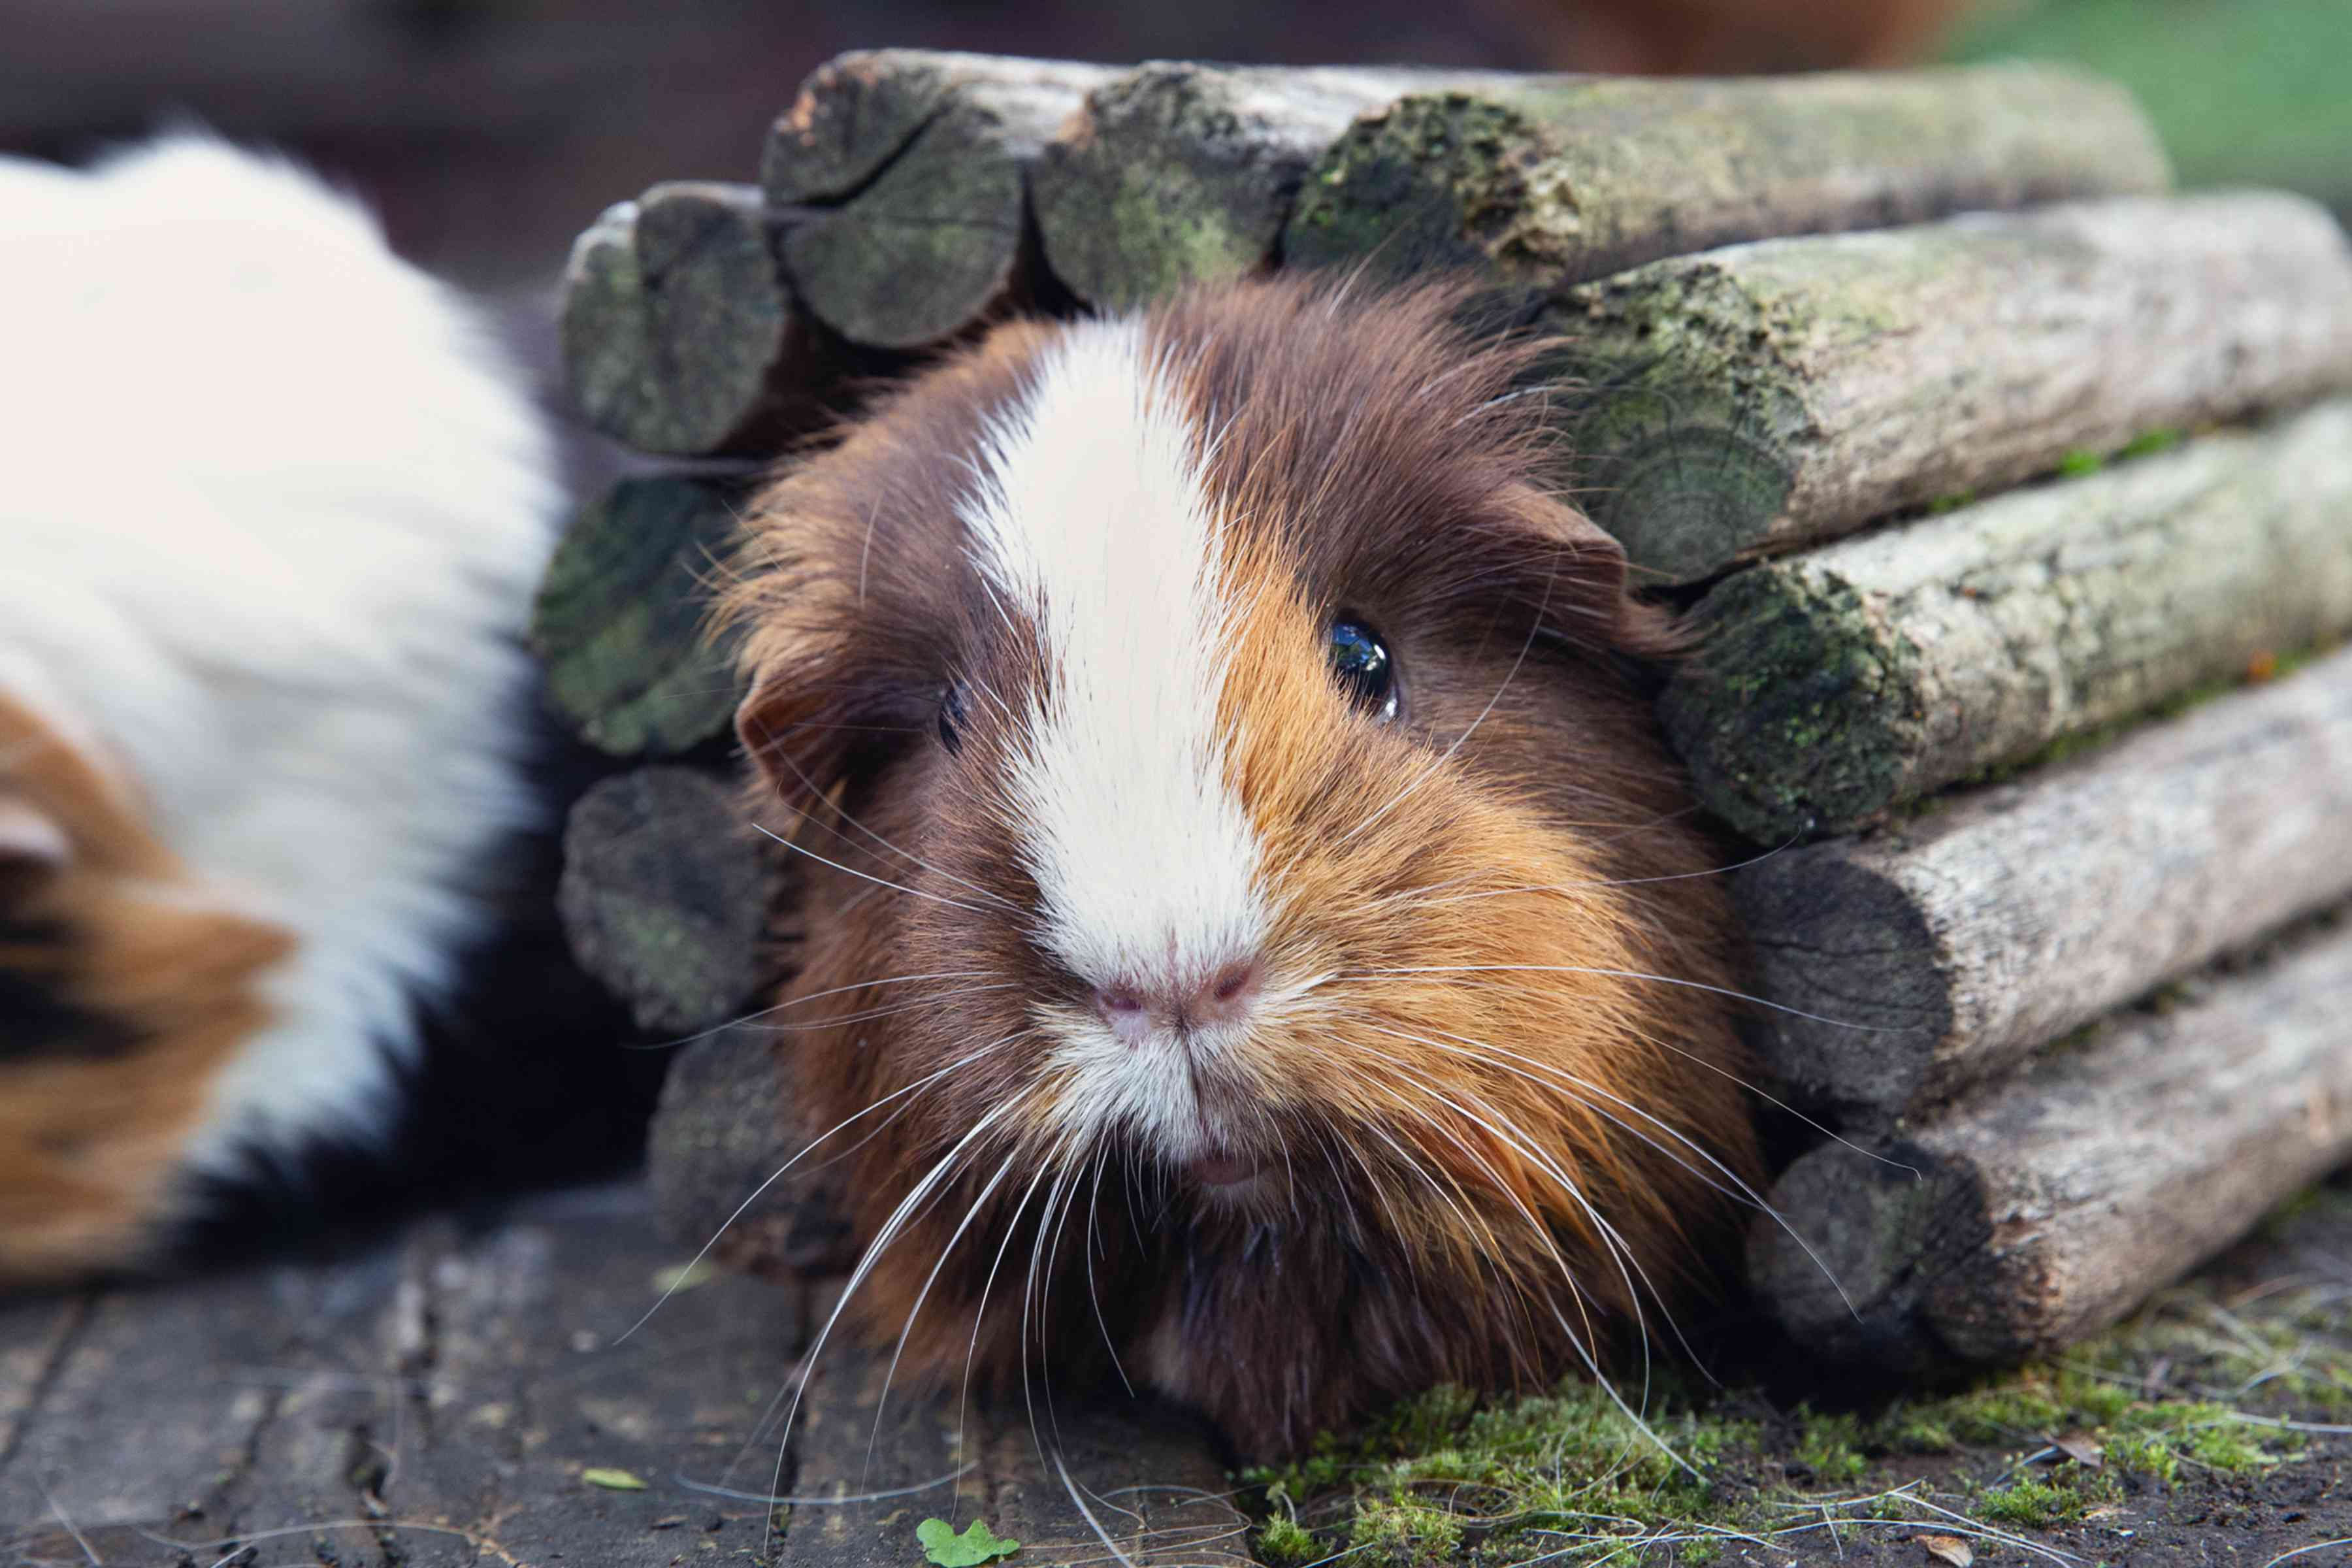 Guinea pig with brown and white hair poking its head out of wooden tunnel